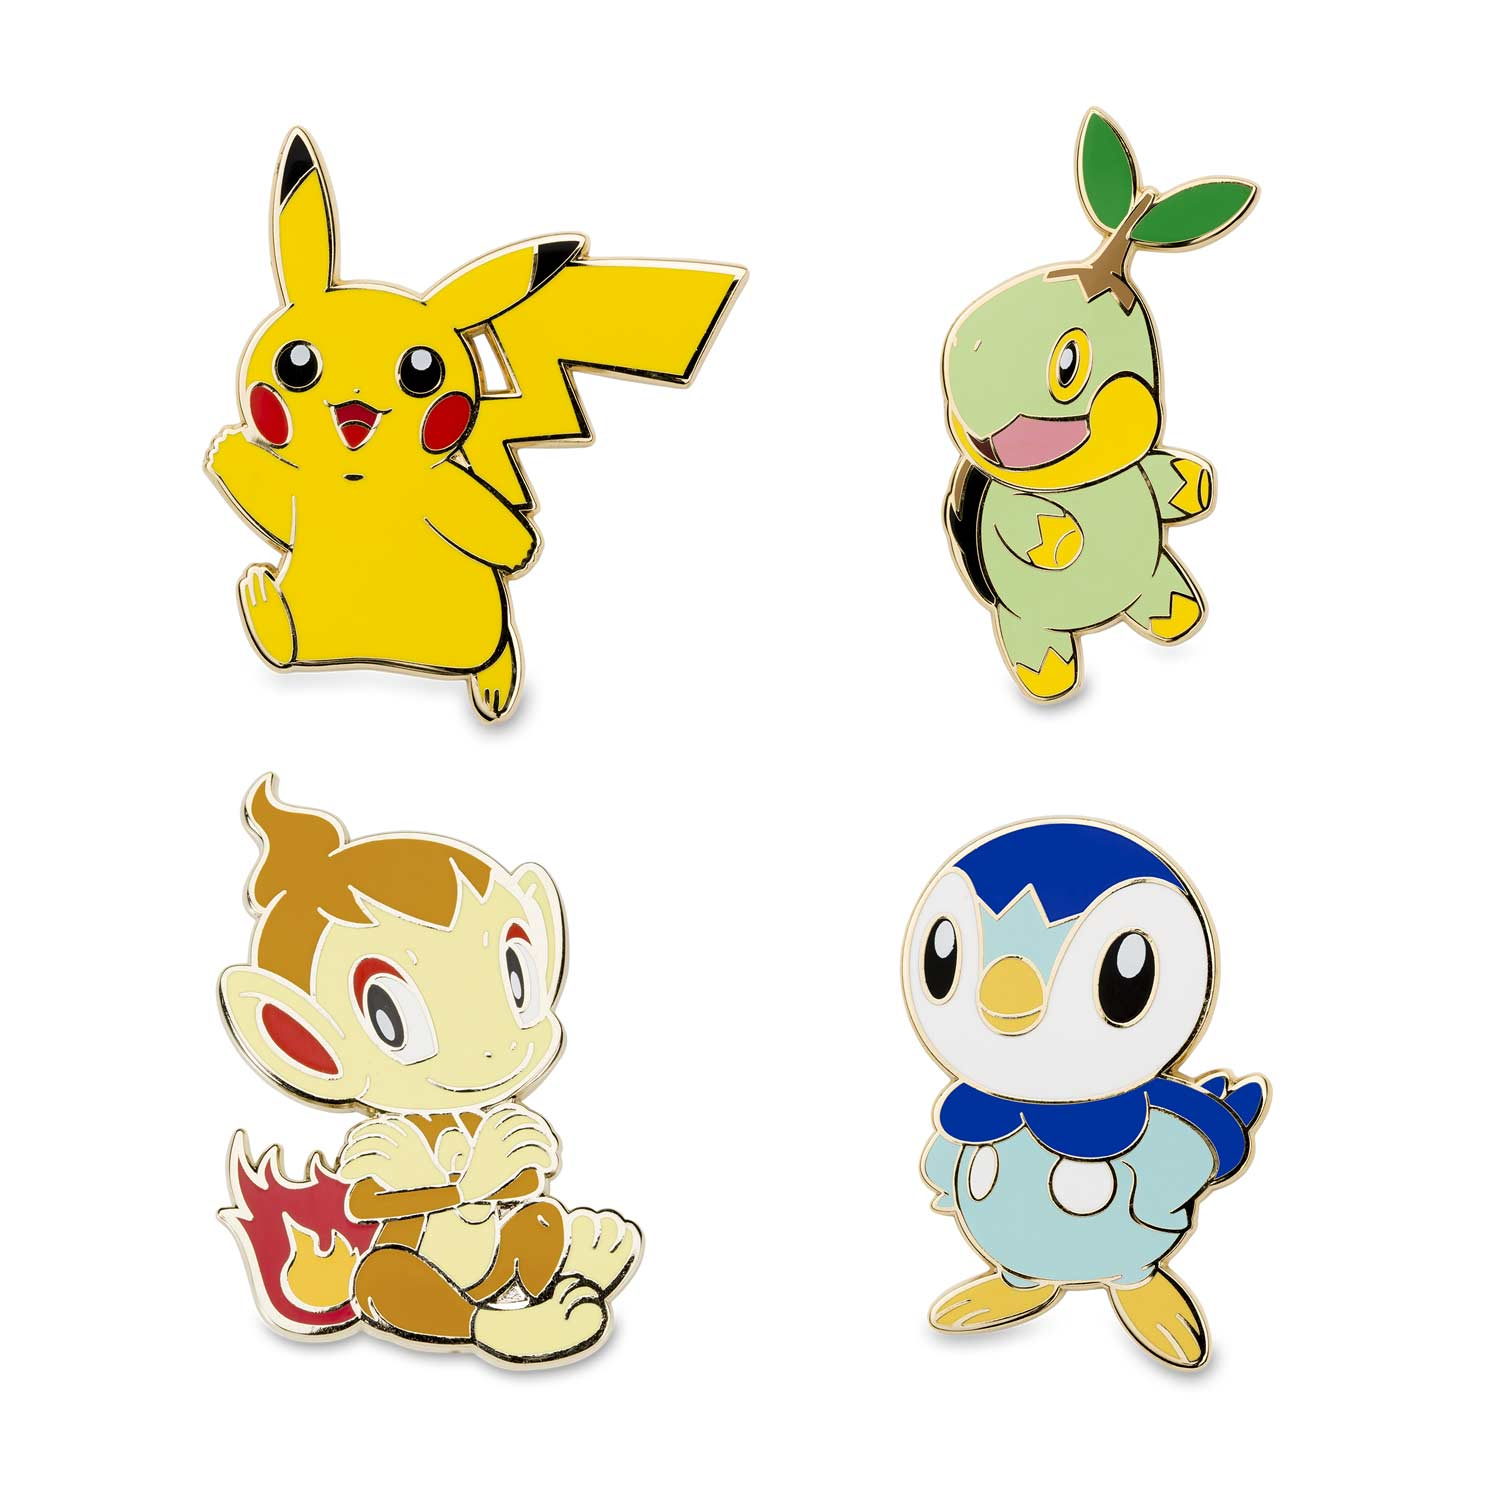 Image For Pikachu Turtwig Chimchar Piplup Pokemon Pins From Center